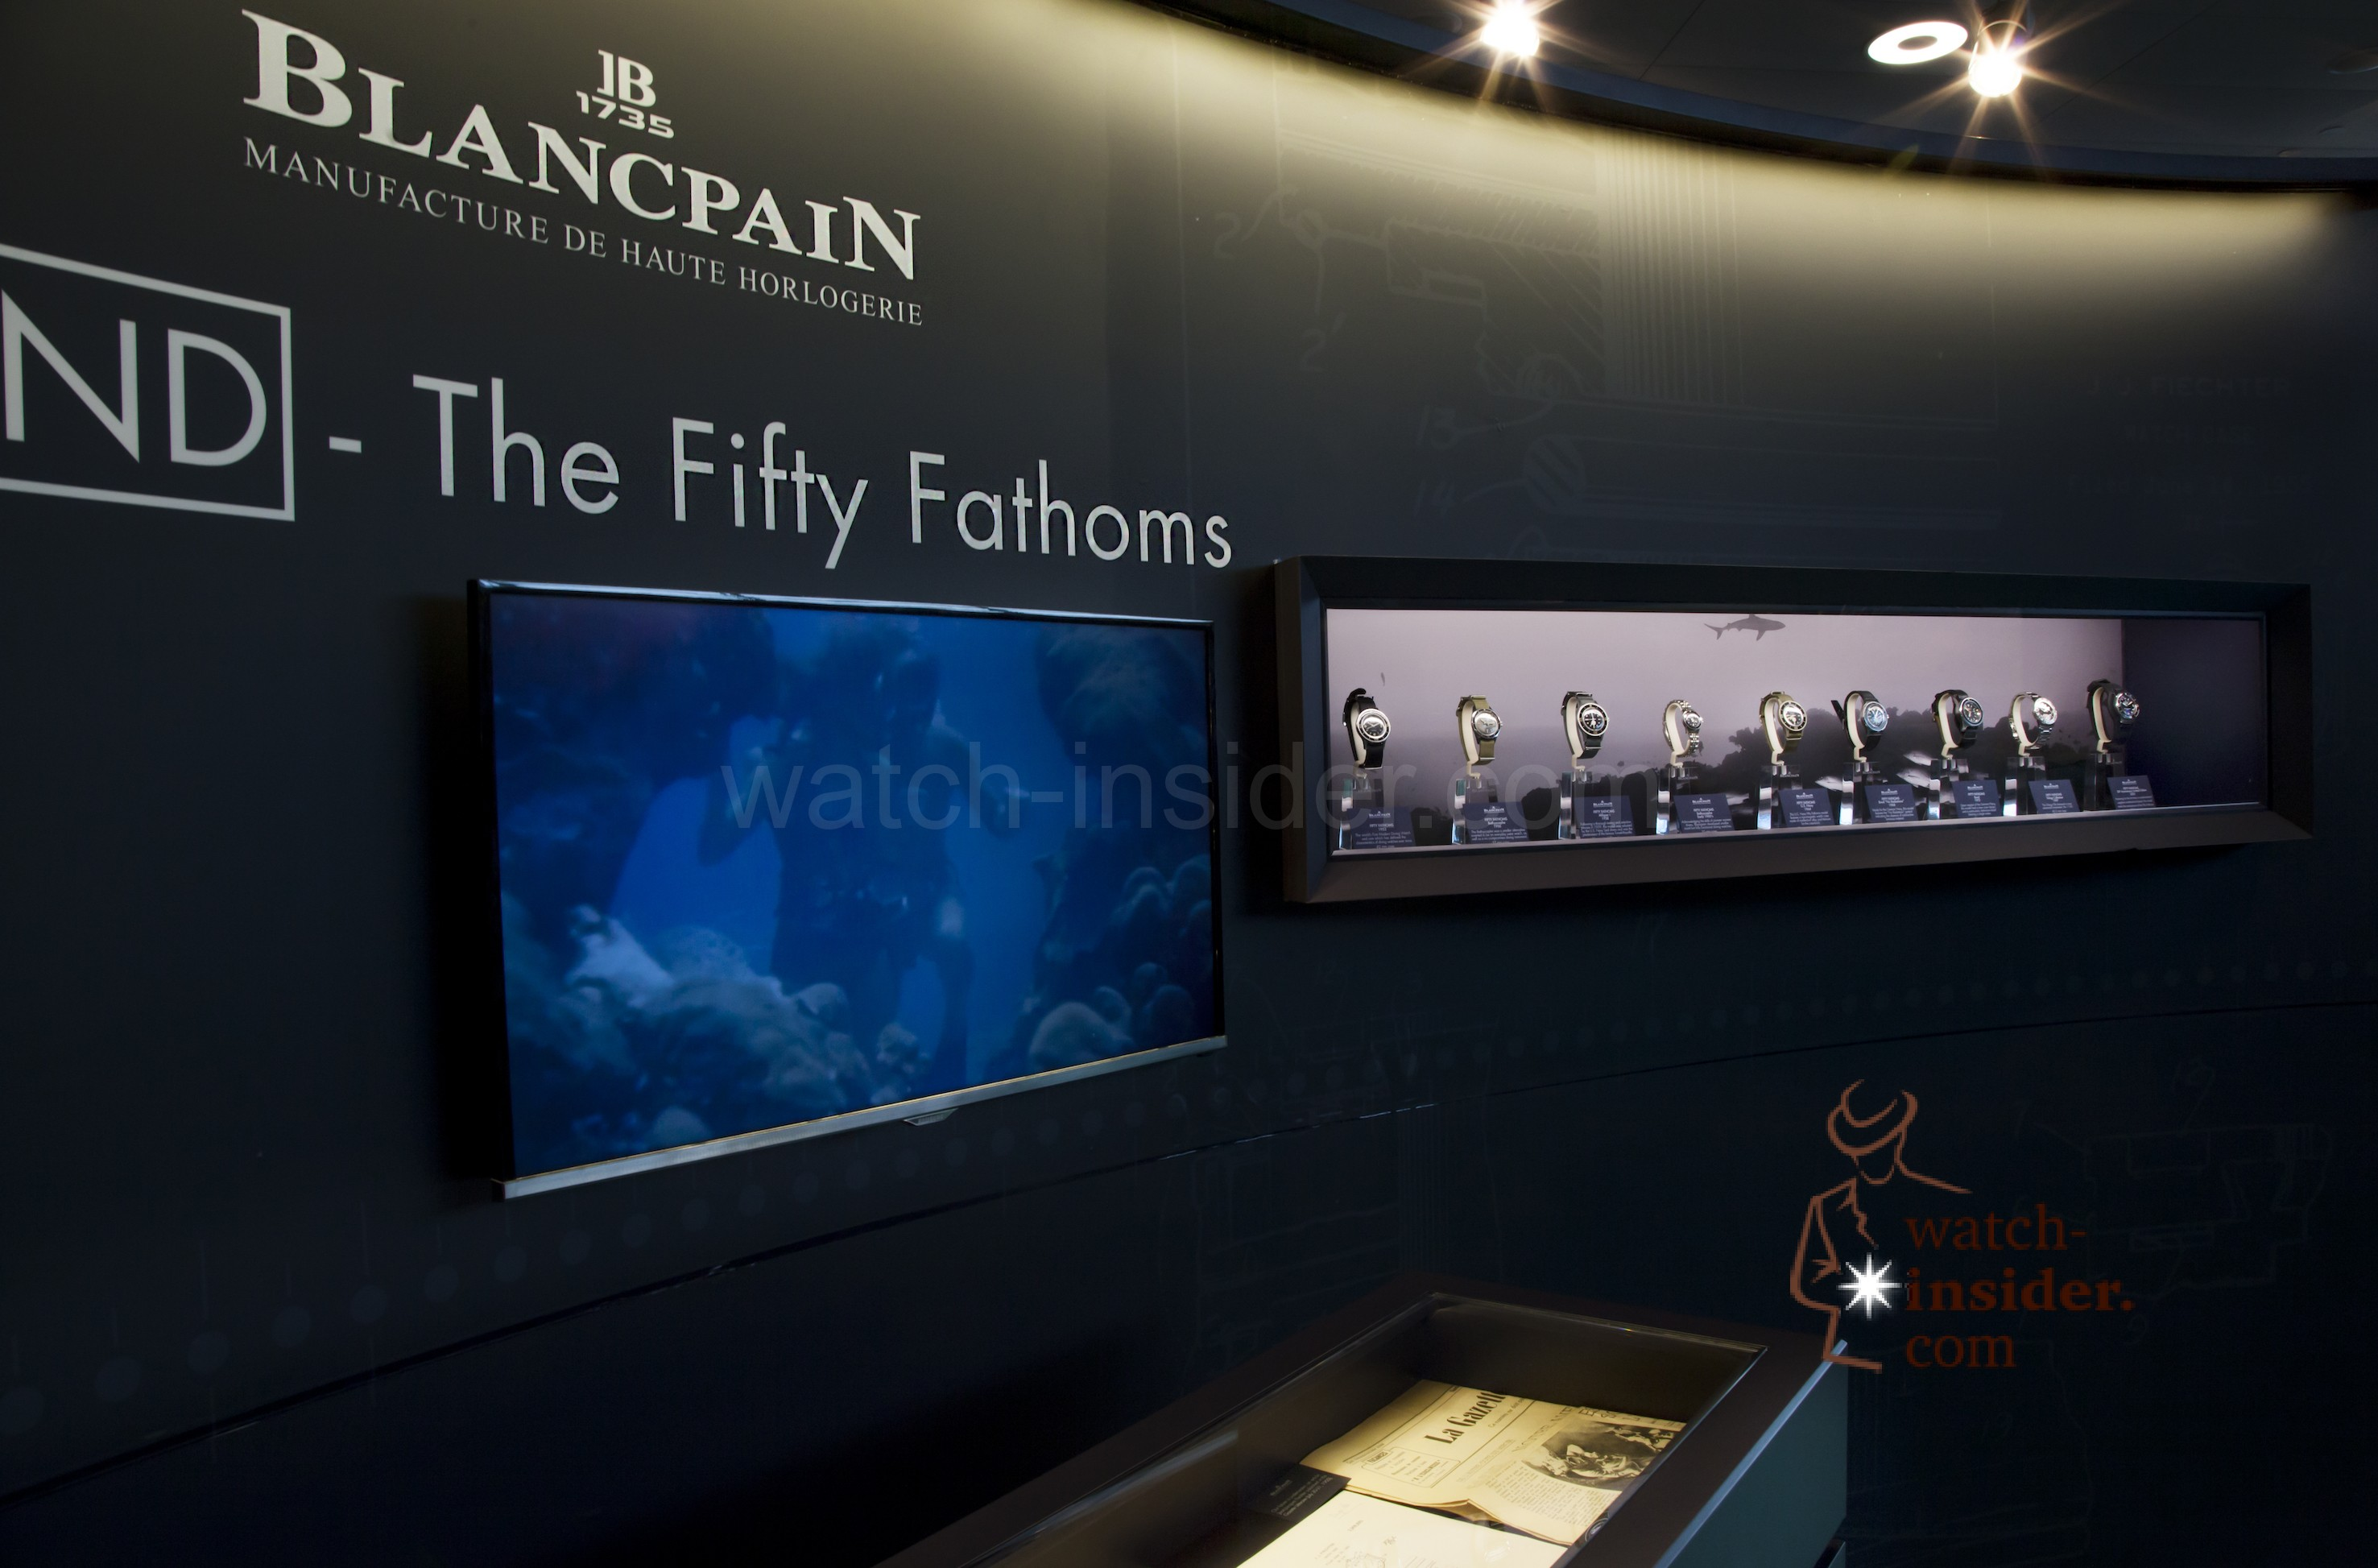 Blancpain1735 Blancpain Ocean Commitment Exhibition At Zurich